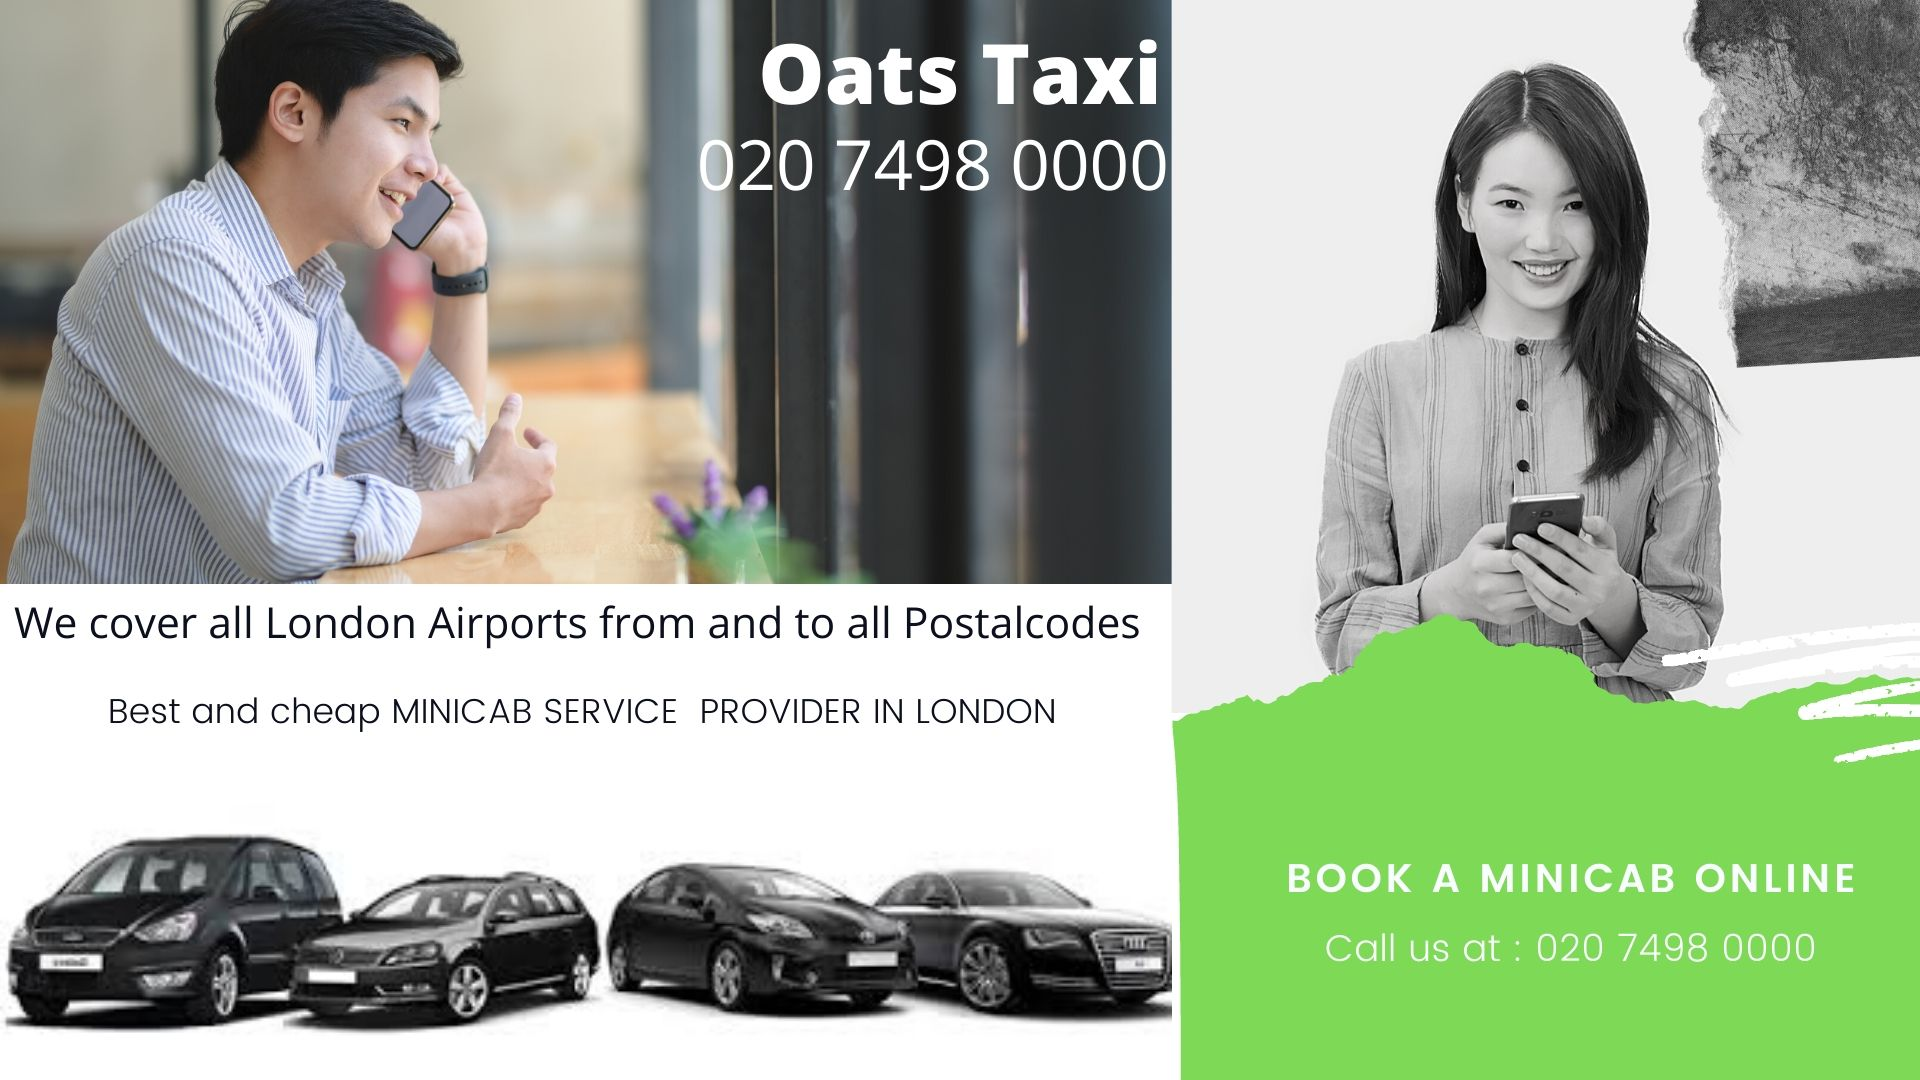 Nearest Taxi Office in Brixton | Nearest Taxi Office in Gatwick Airport | Call now : 02074980000